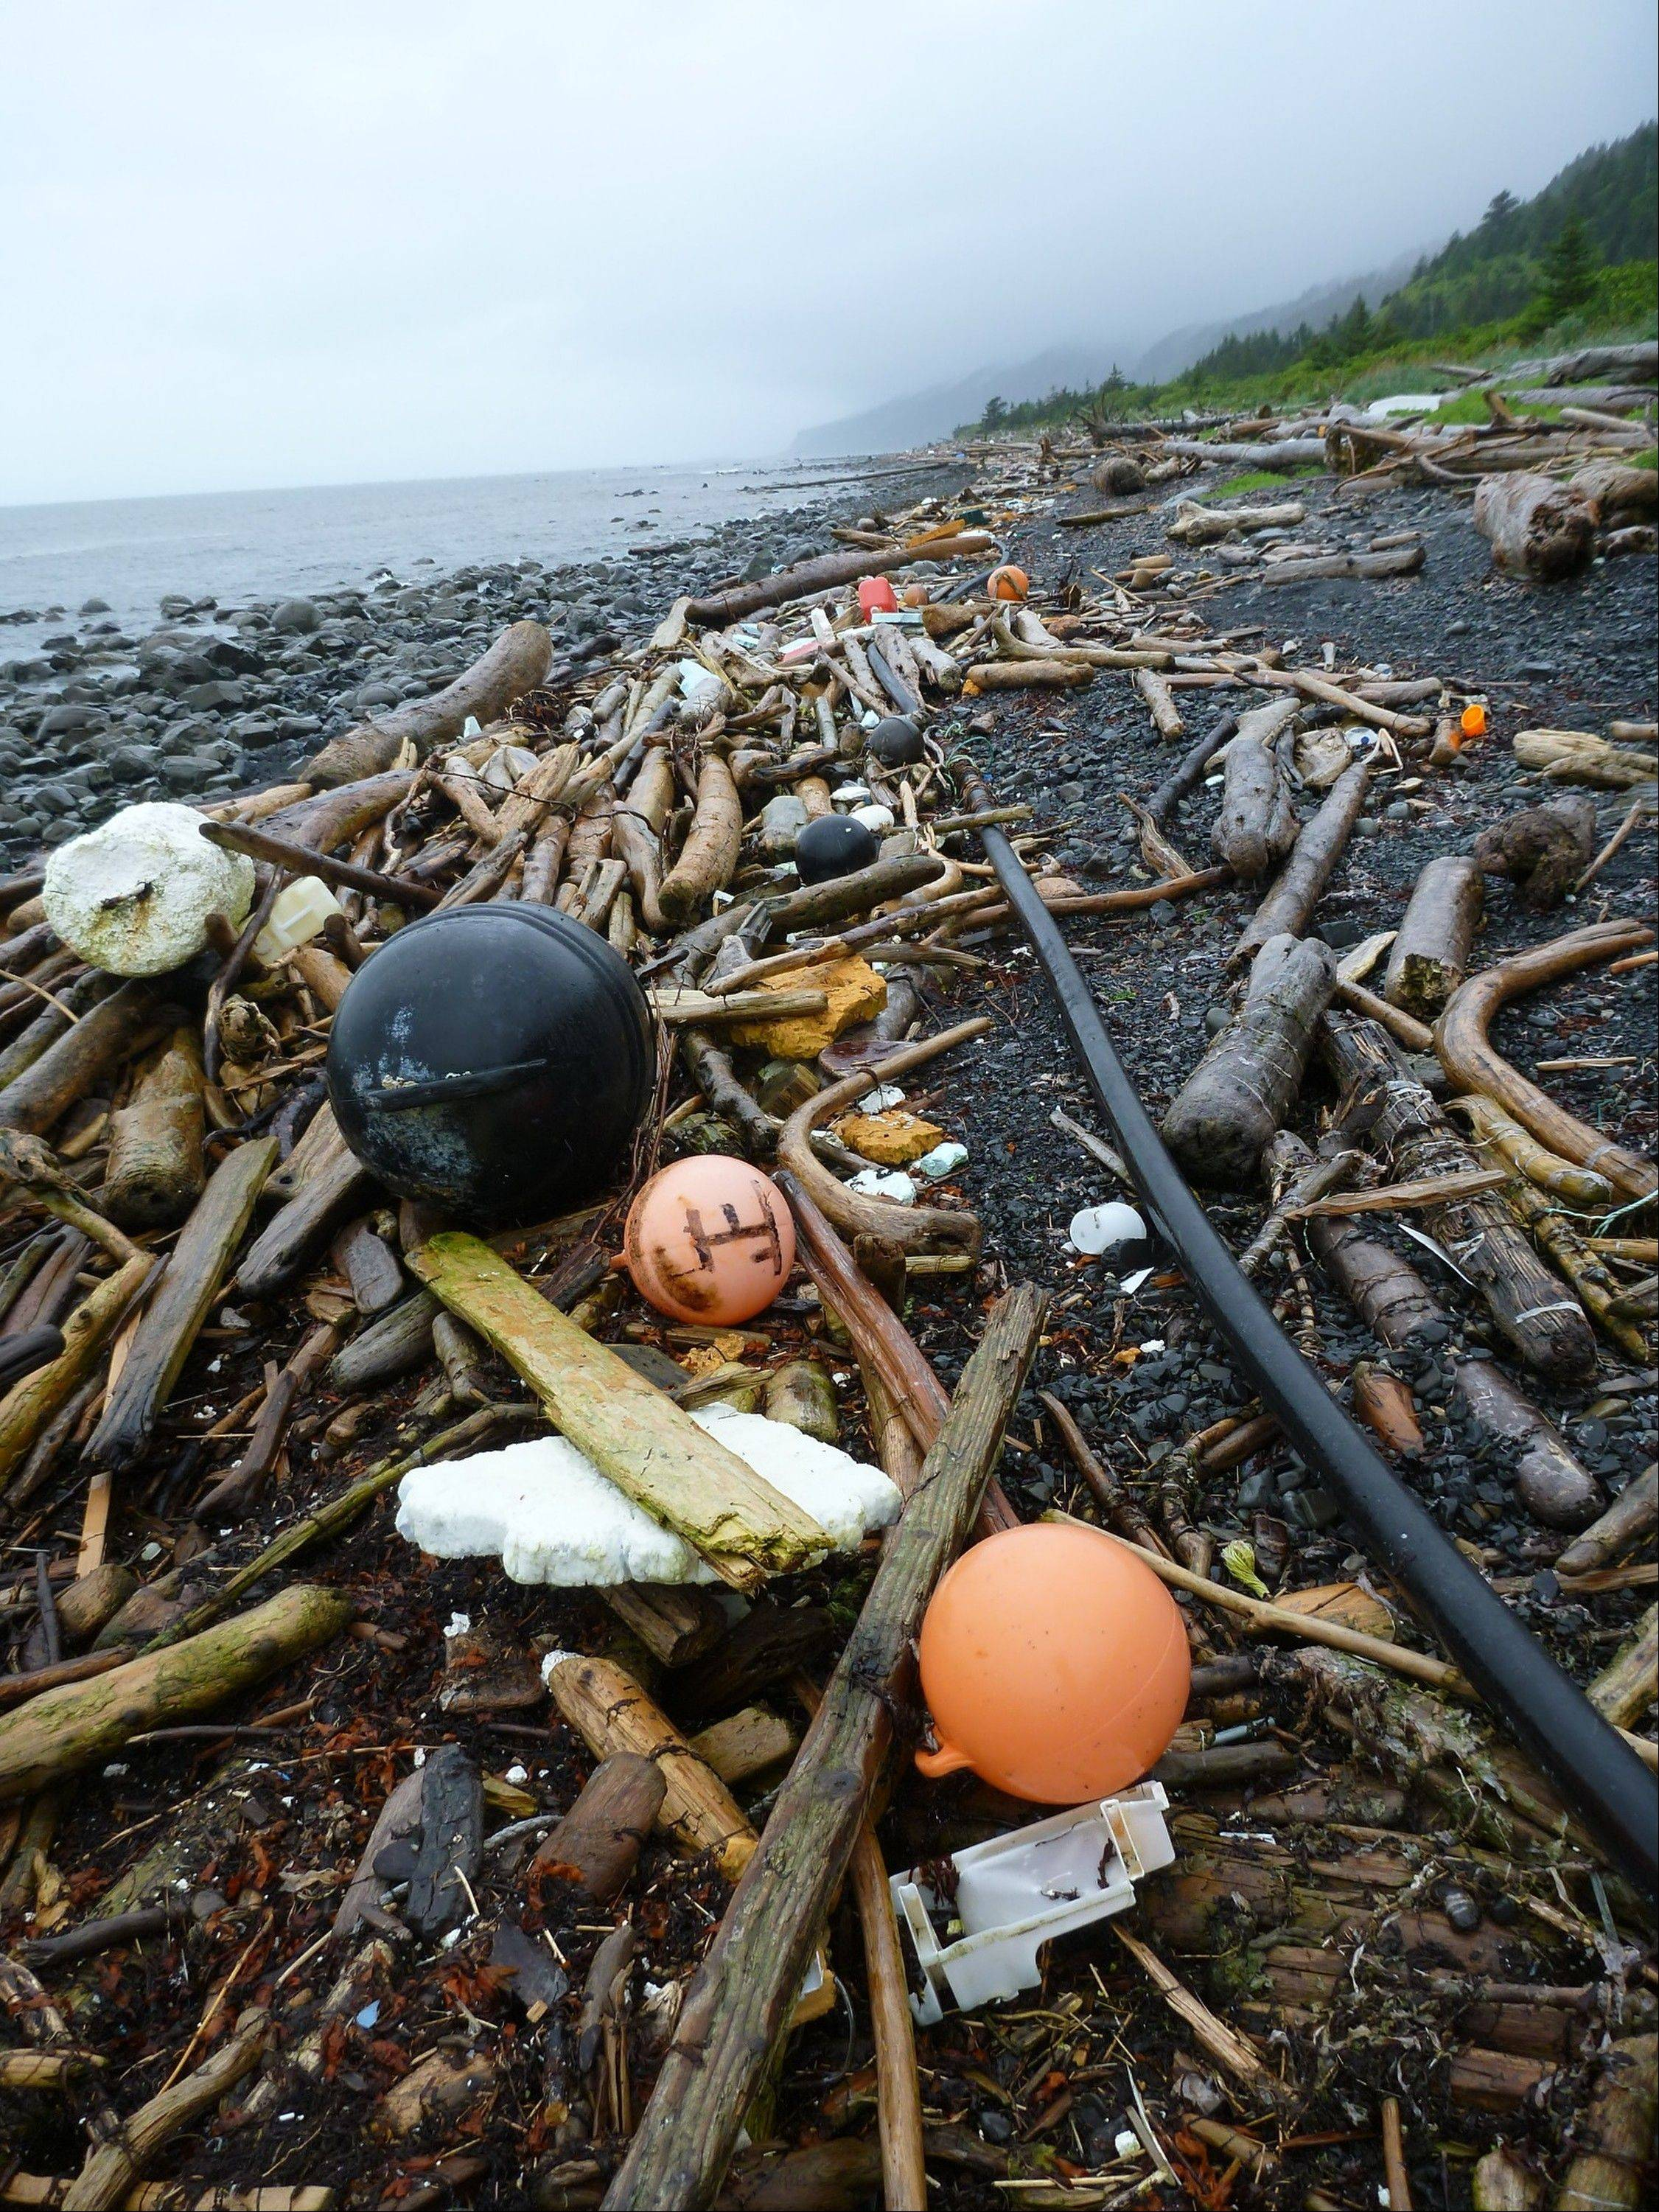 Associated Press Buoys, foam and other debris are strewn about a beach on Kayak Island, Alaska. The West Coast is anticipating more debris from the 2011 Japanese tsunami to wash ashore this winter. Scientists expect the bulk of the tsunami debris to end up in the Pacific Northwest.